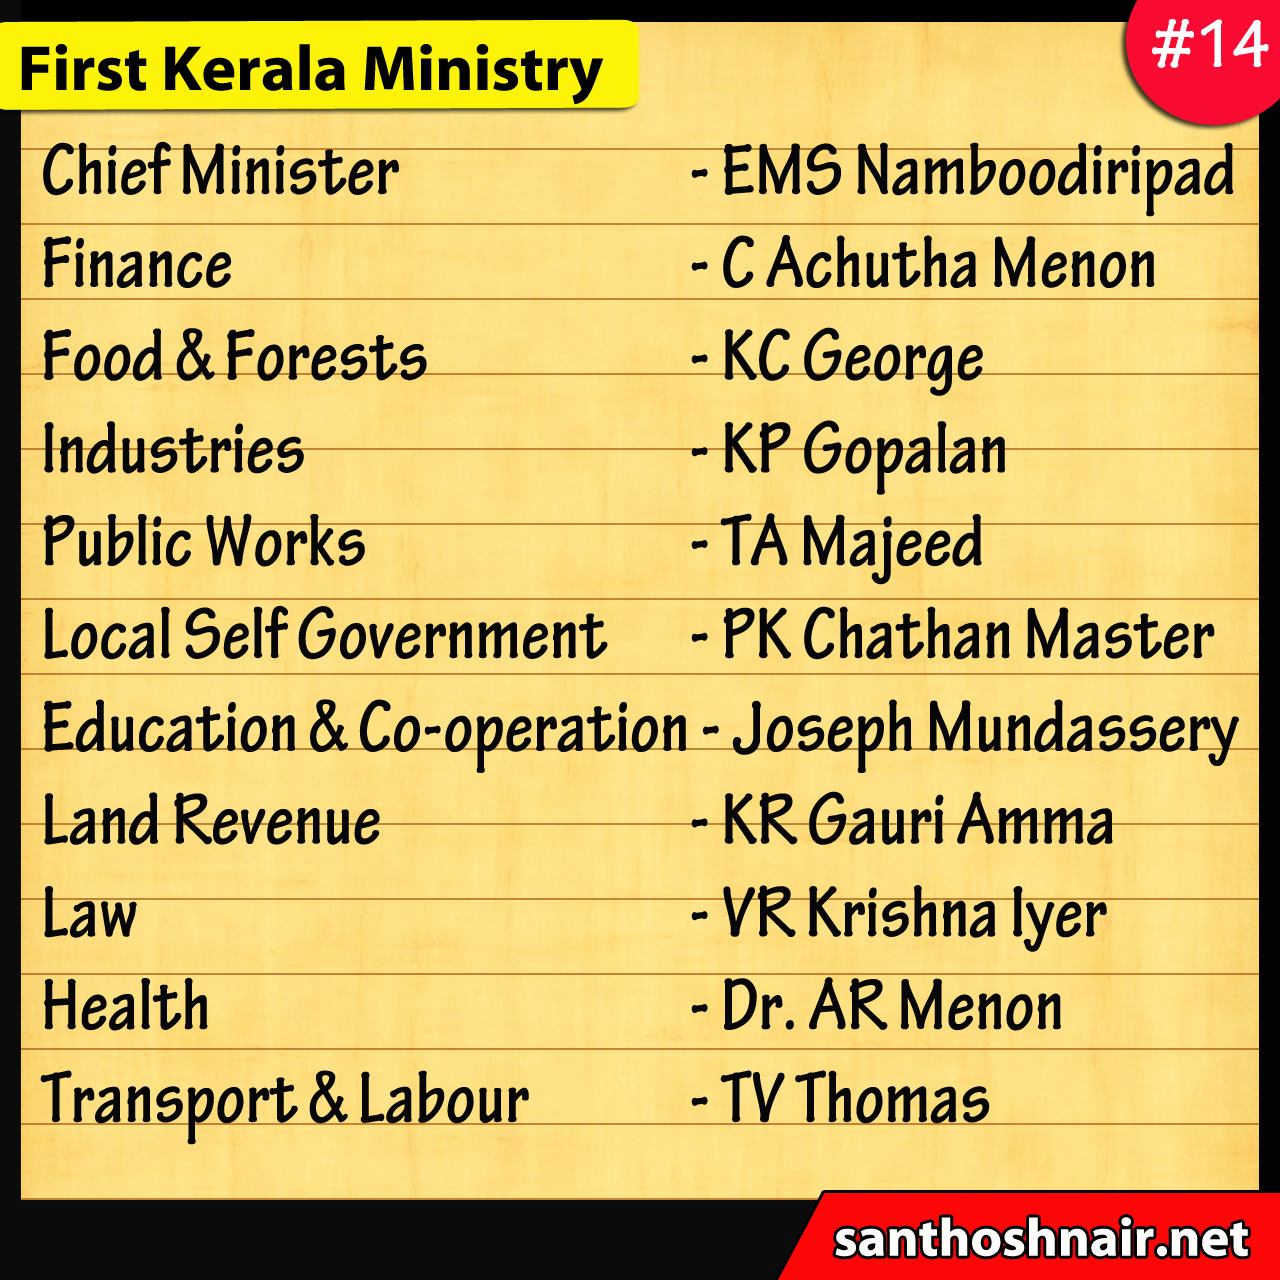 #14 - First Kerala Ministry